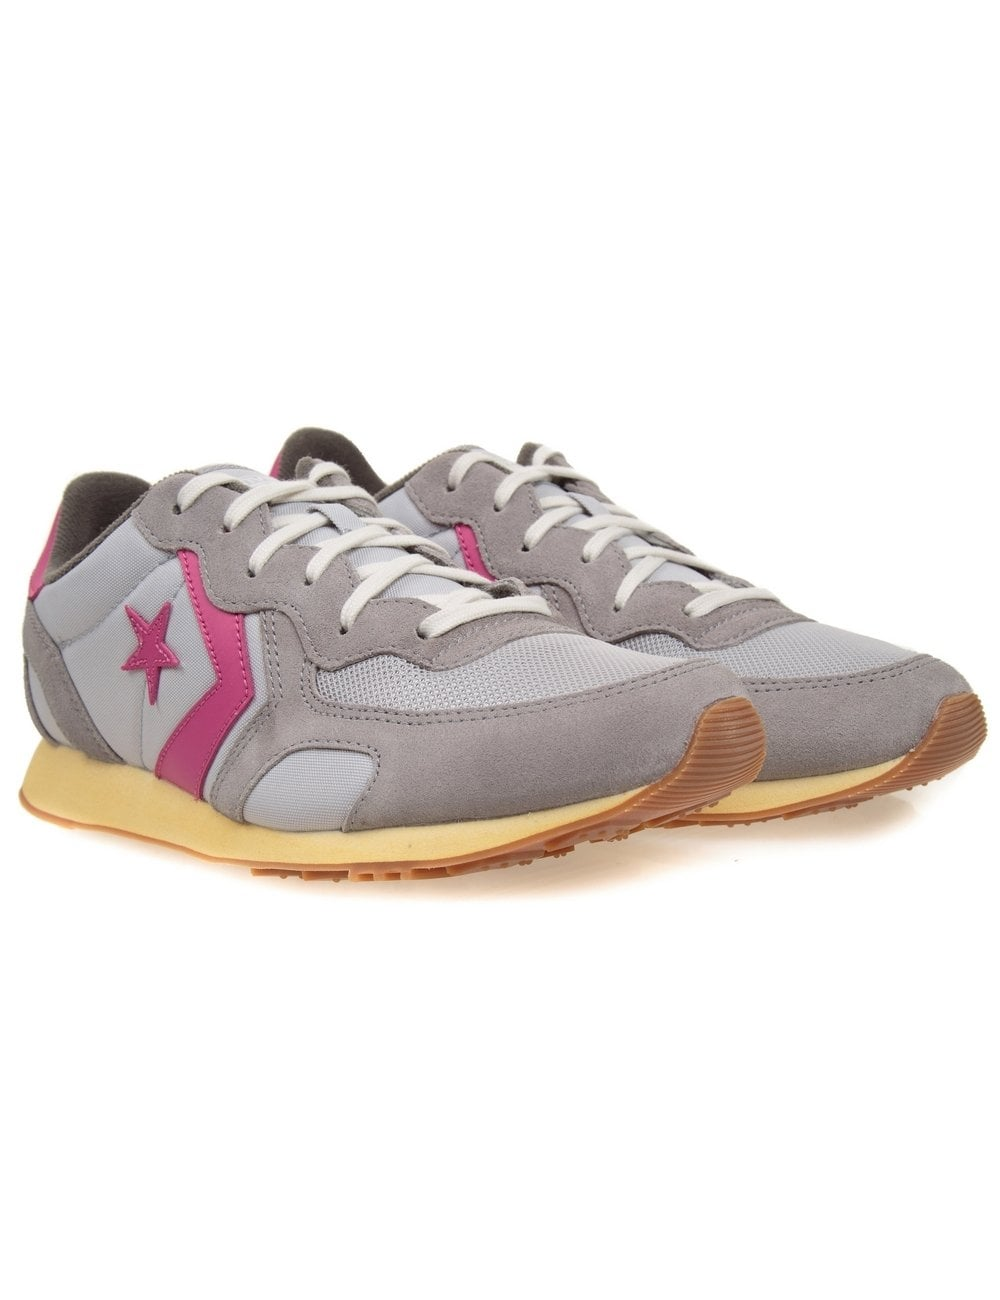 4aa1f3d8f409 Converse Auckland Racer - Oyster - Footwear from Fat Buddha Store UK